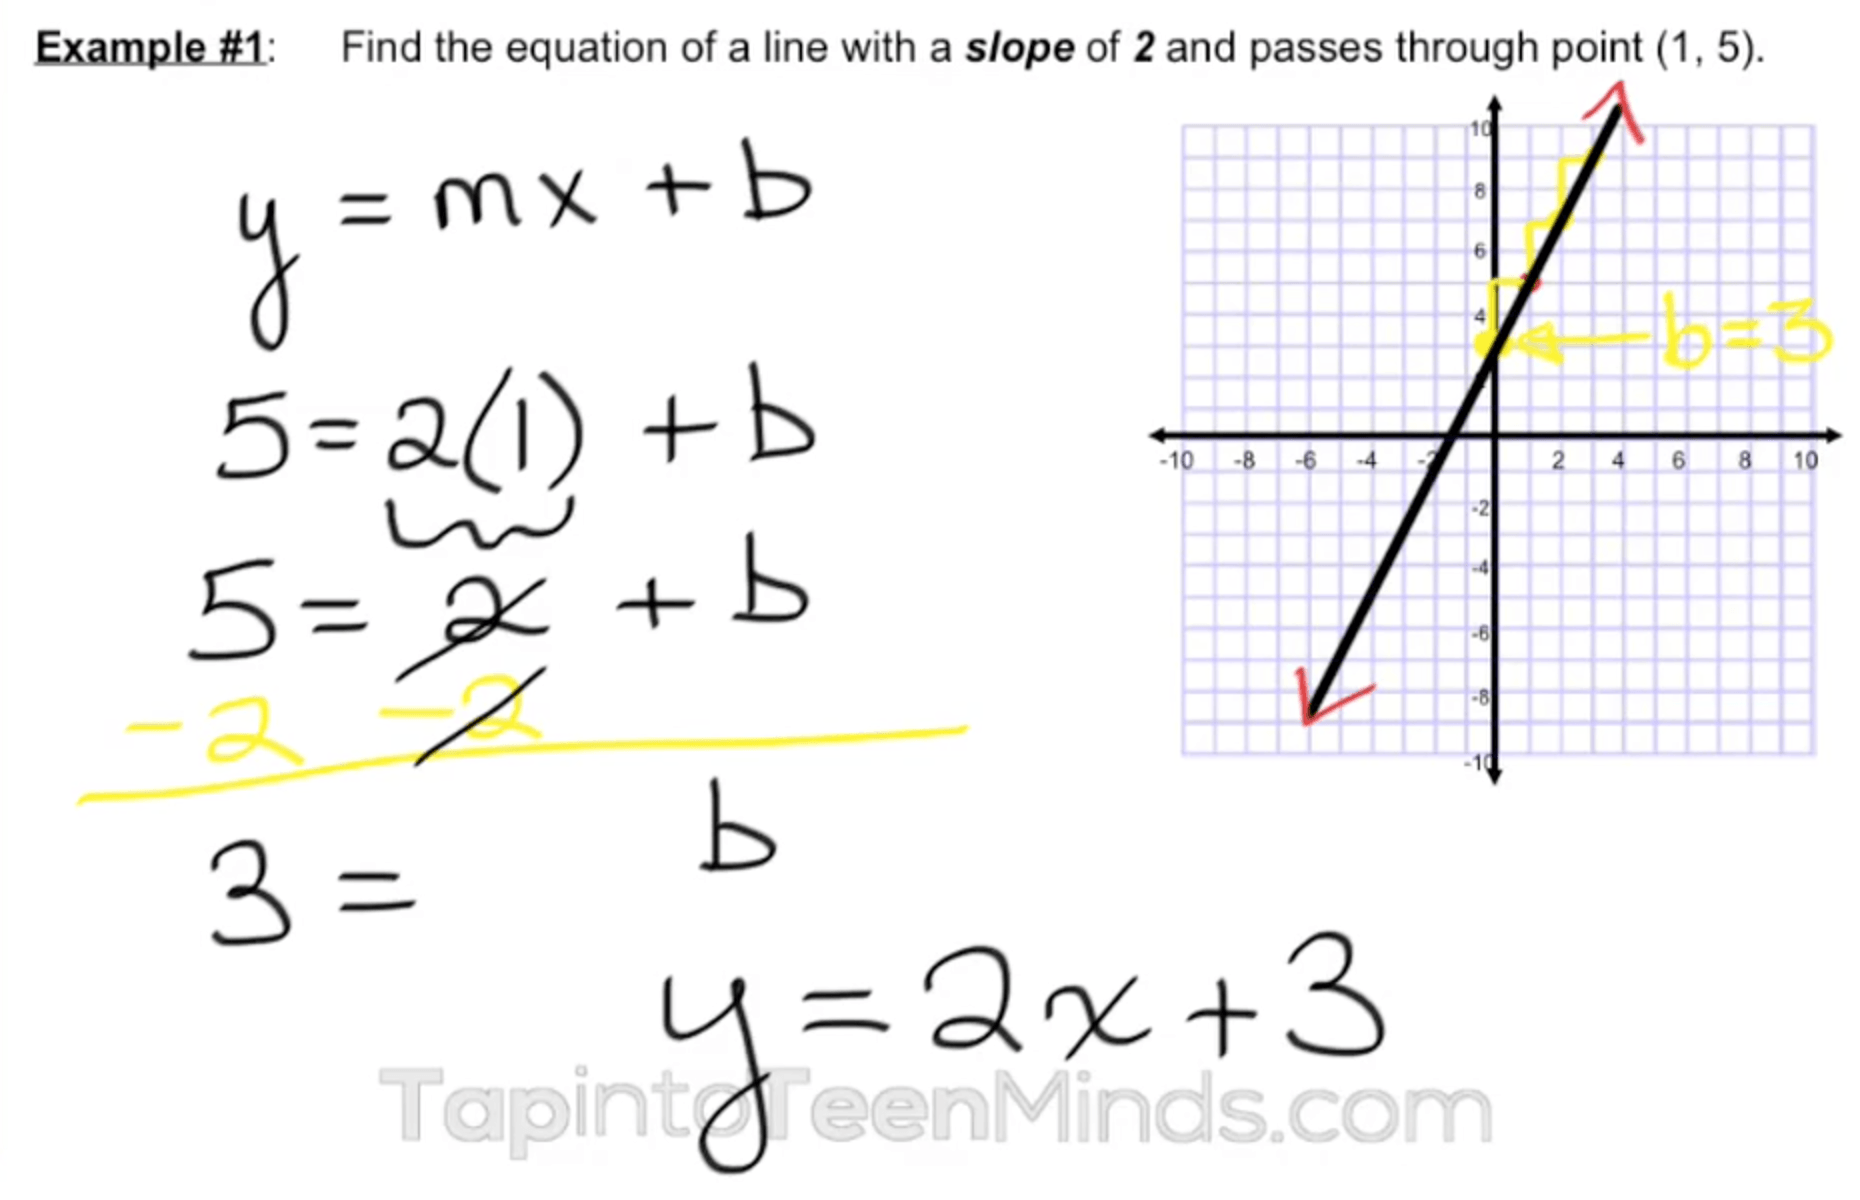 Finding Equation Of A Line Given Slope And One Point